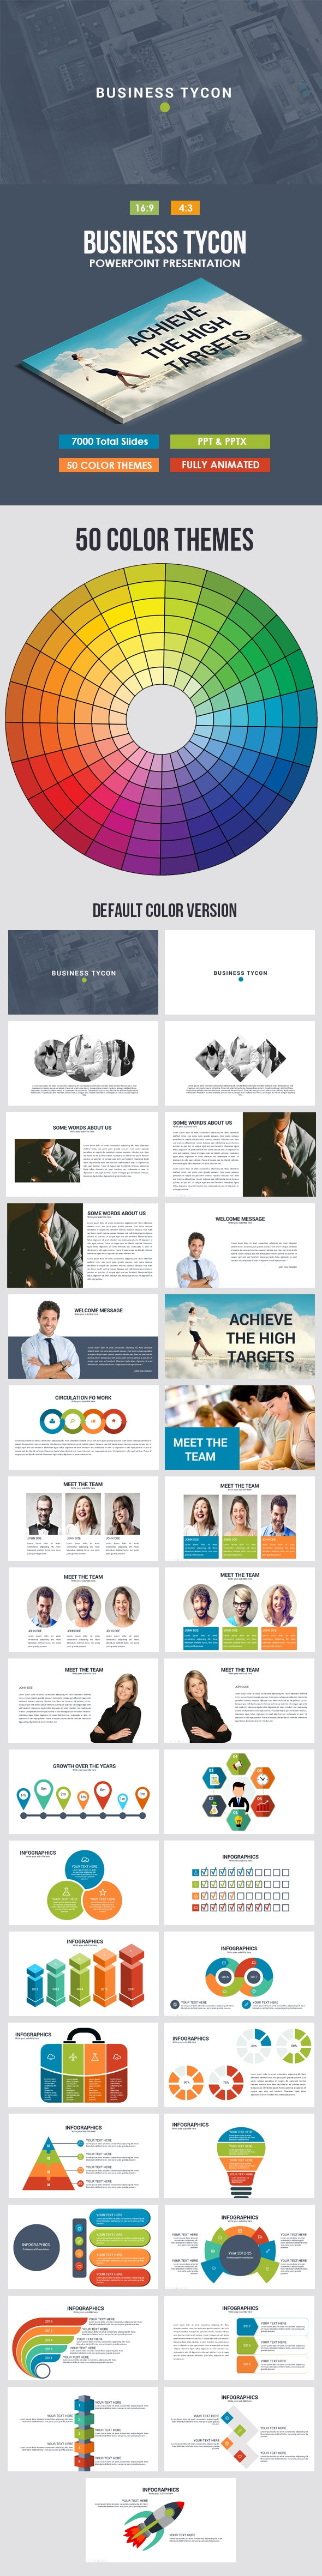 Business Tycon Powerpoint Template - Business PowerPoint Templates